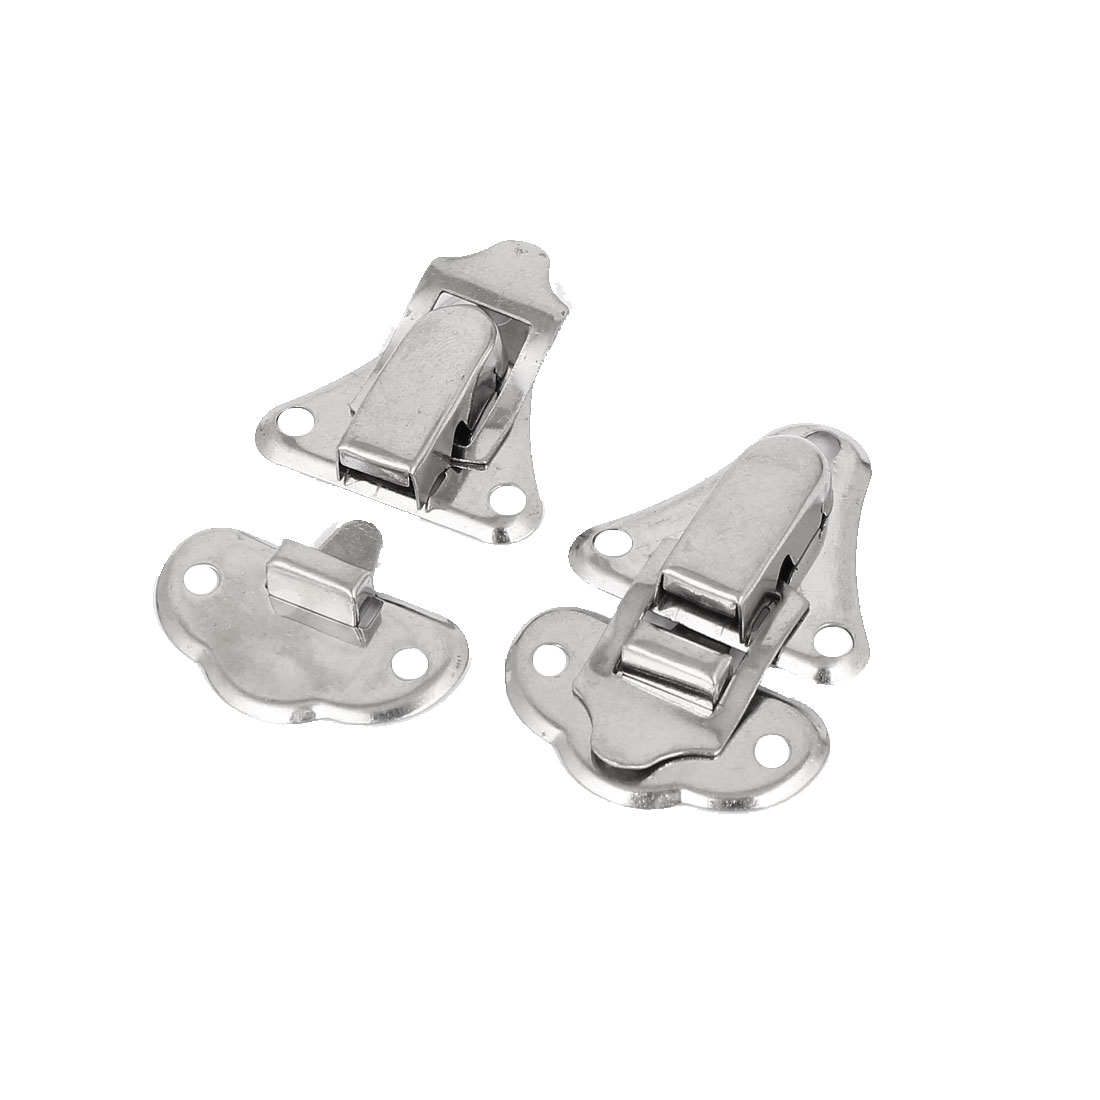 45mm x 30mm x 8mm Stainless Steel Box Toggle Latch Hasp Silver Tone 2pcs